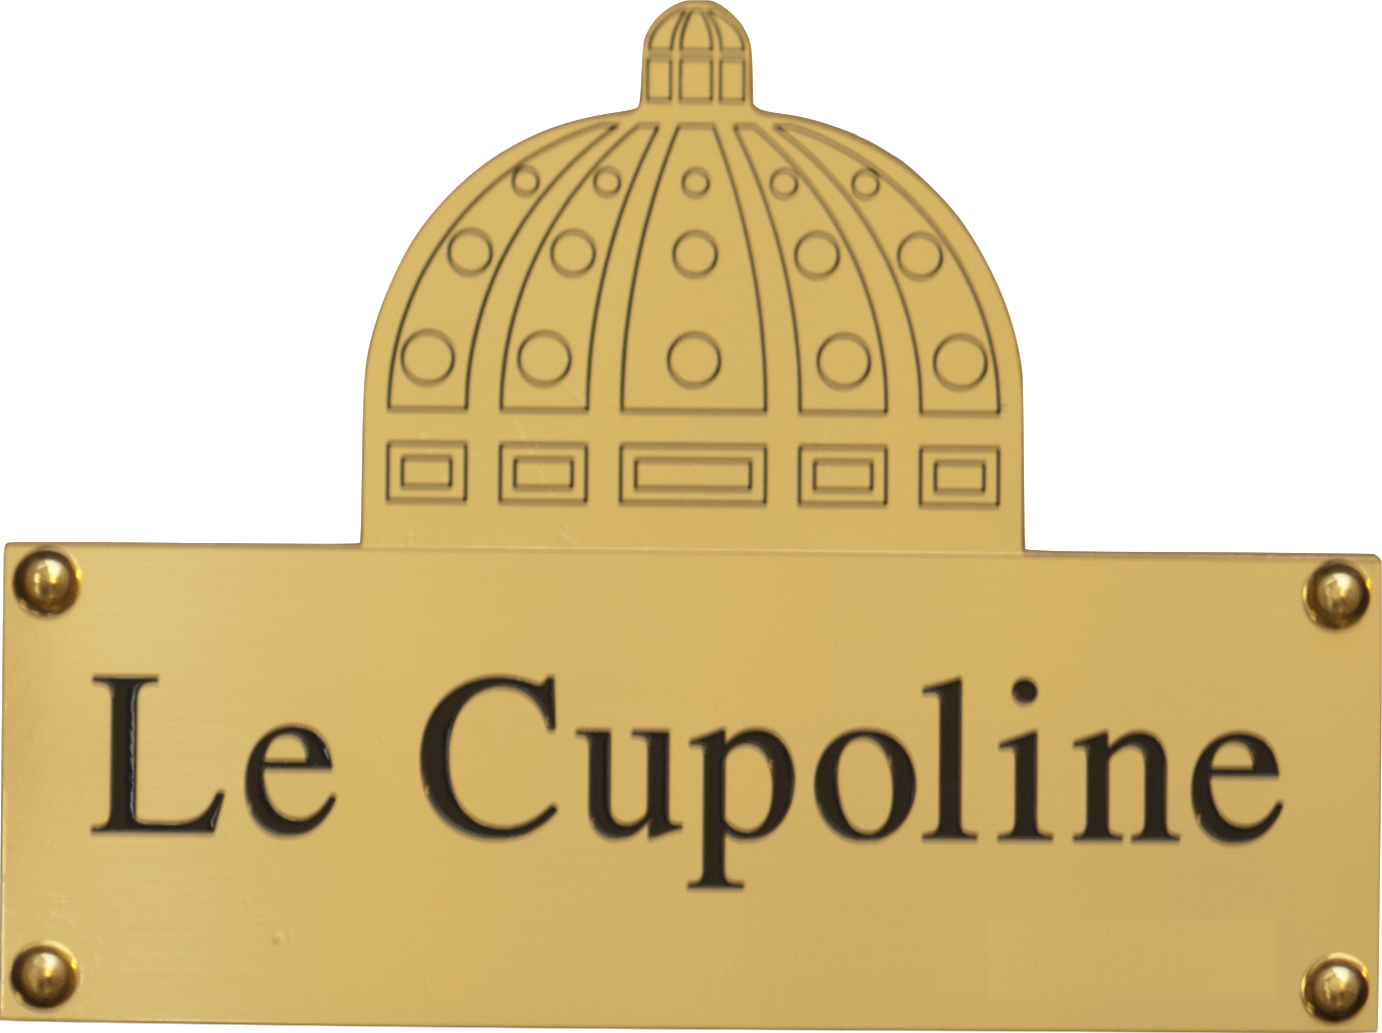 Le Cupoline